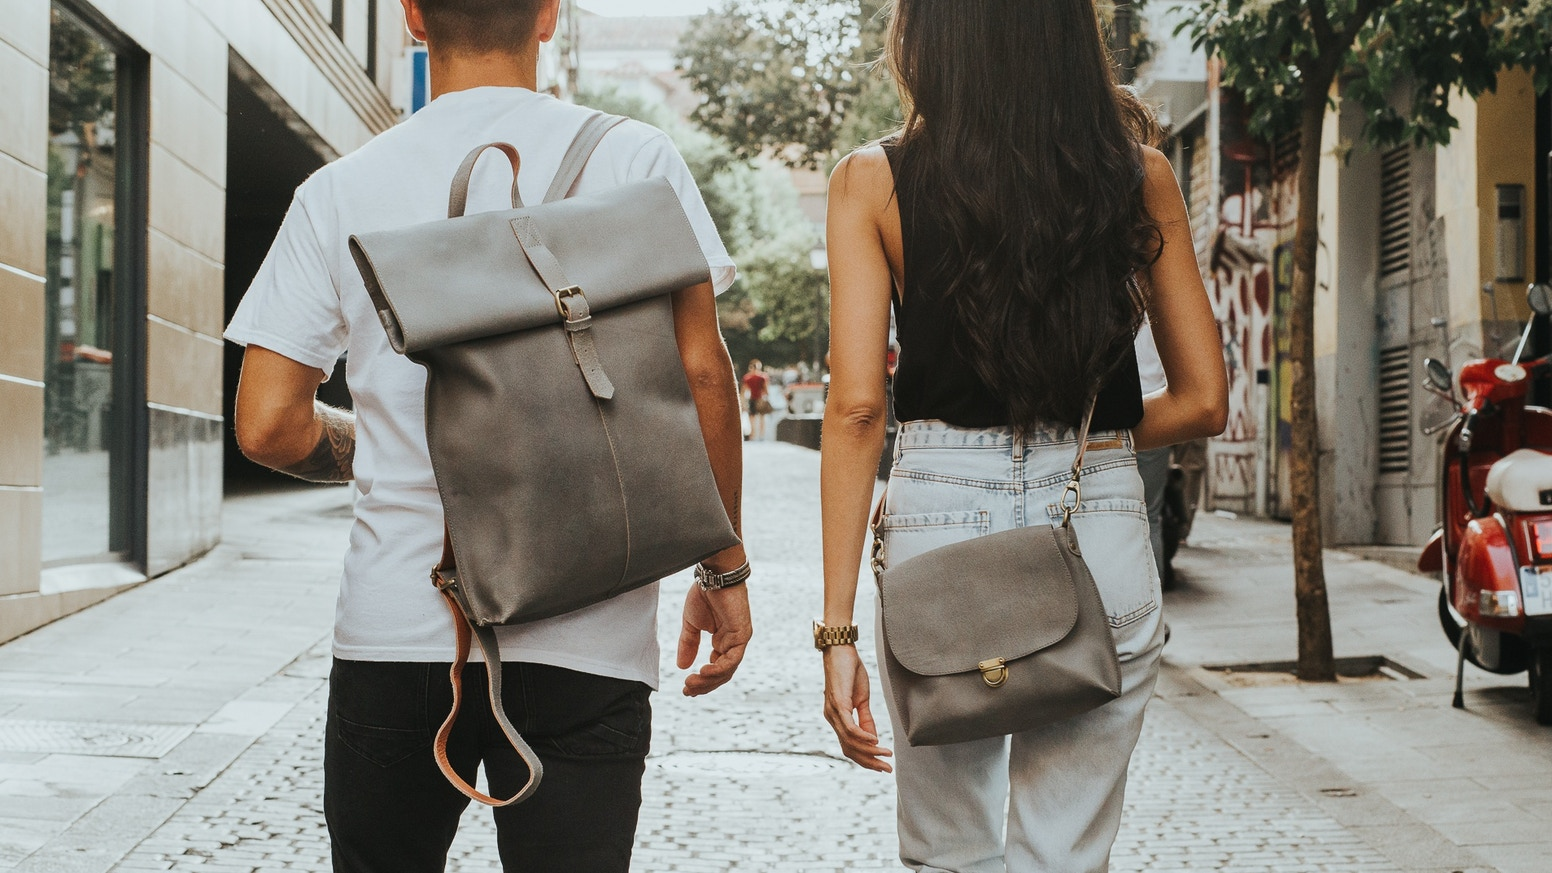 Laauw is a young Dutch brand that created a collection of leather bags that meets the needs of today's life in the city.